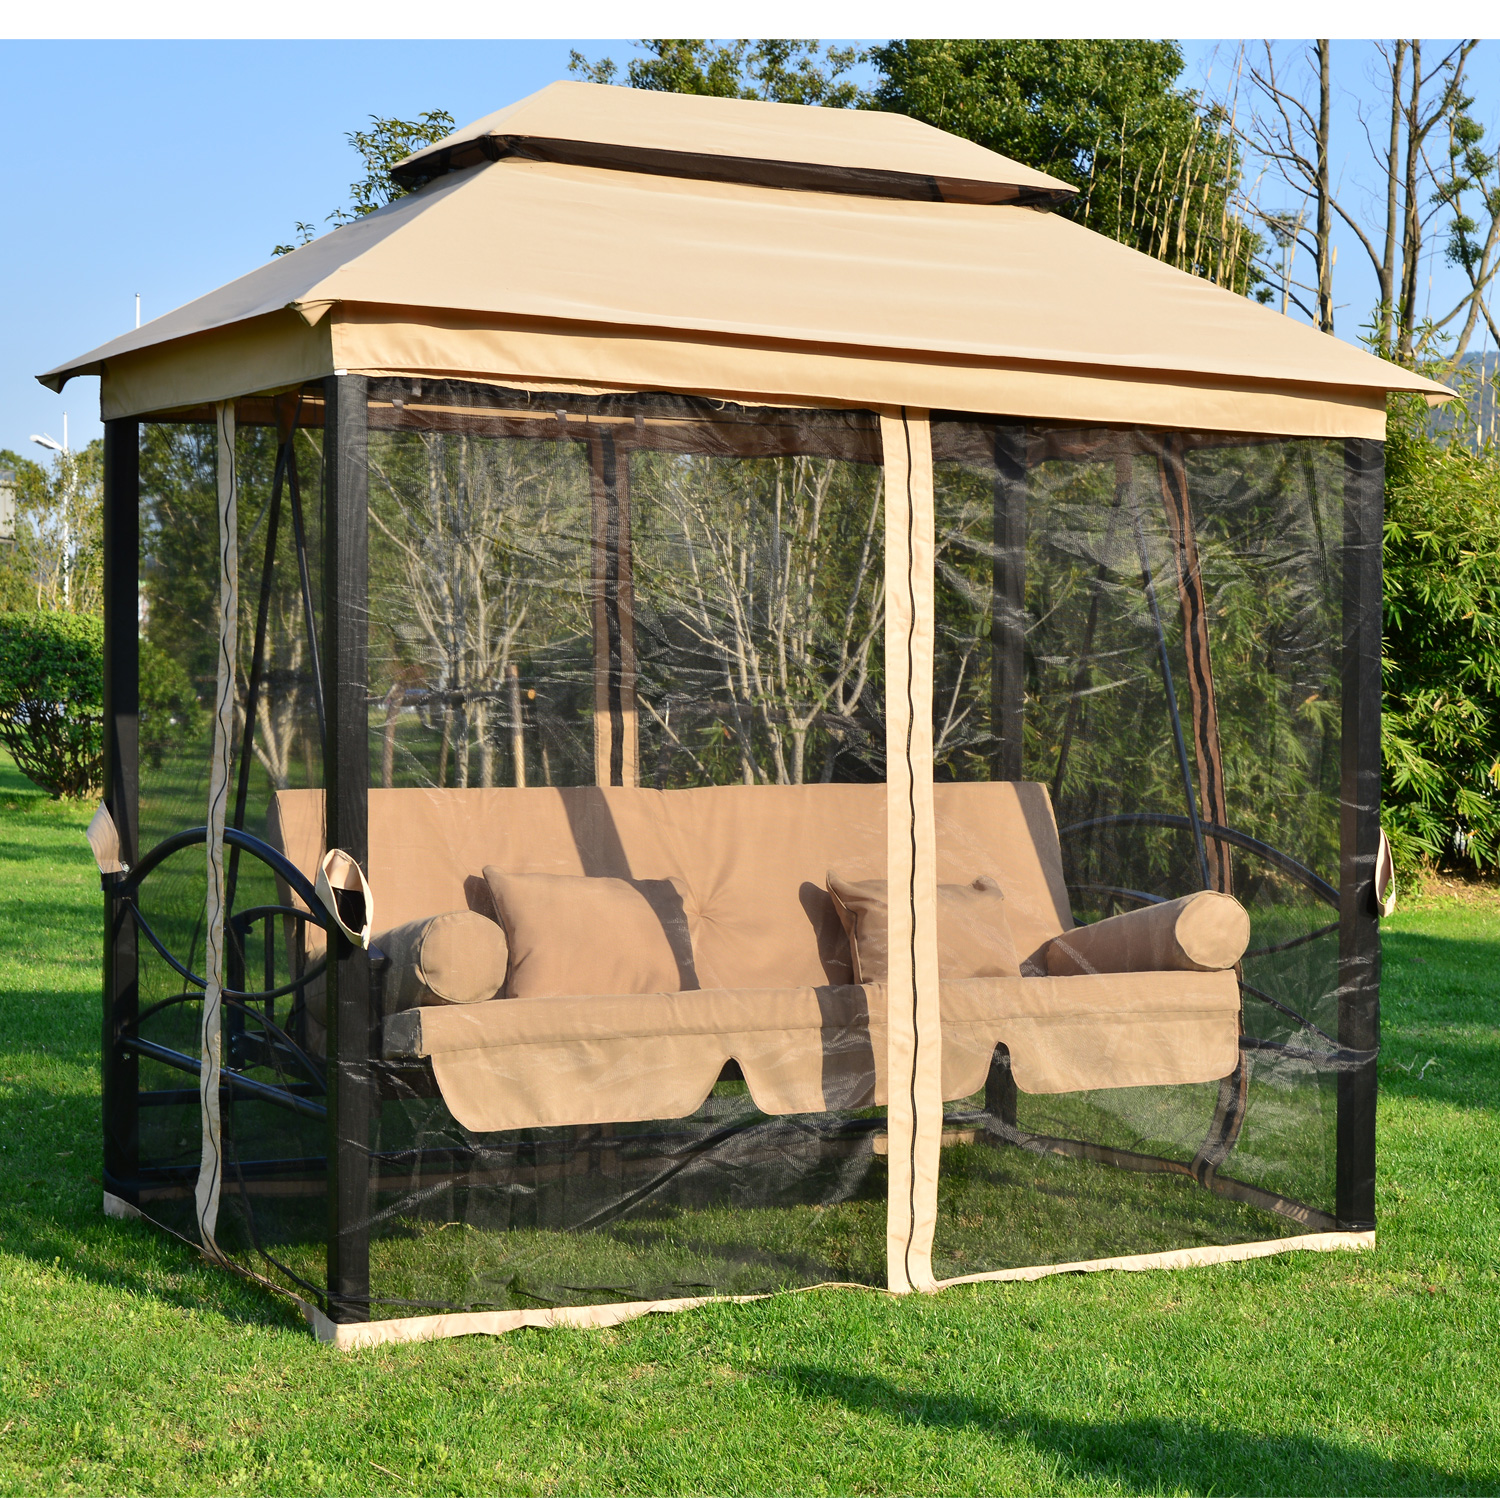 Garden Furniture Swing Seats outsunny outdoor 3 person patio daybed canopy gazebo swing - tan w